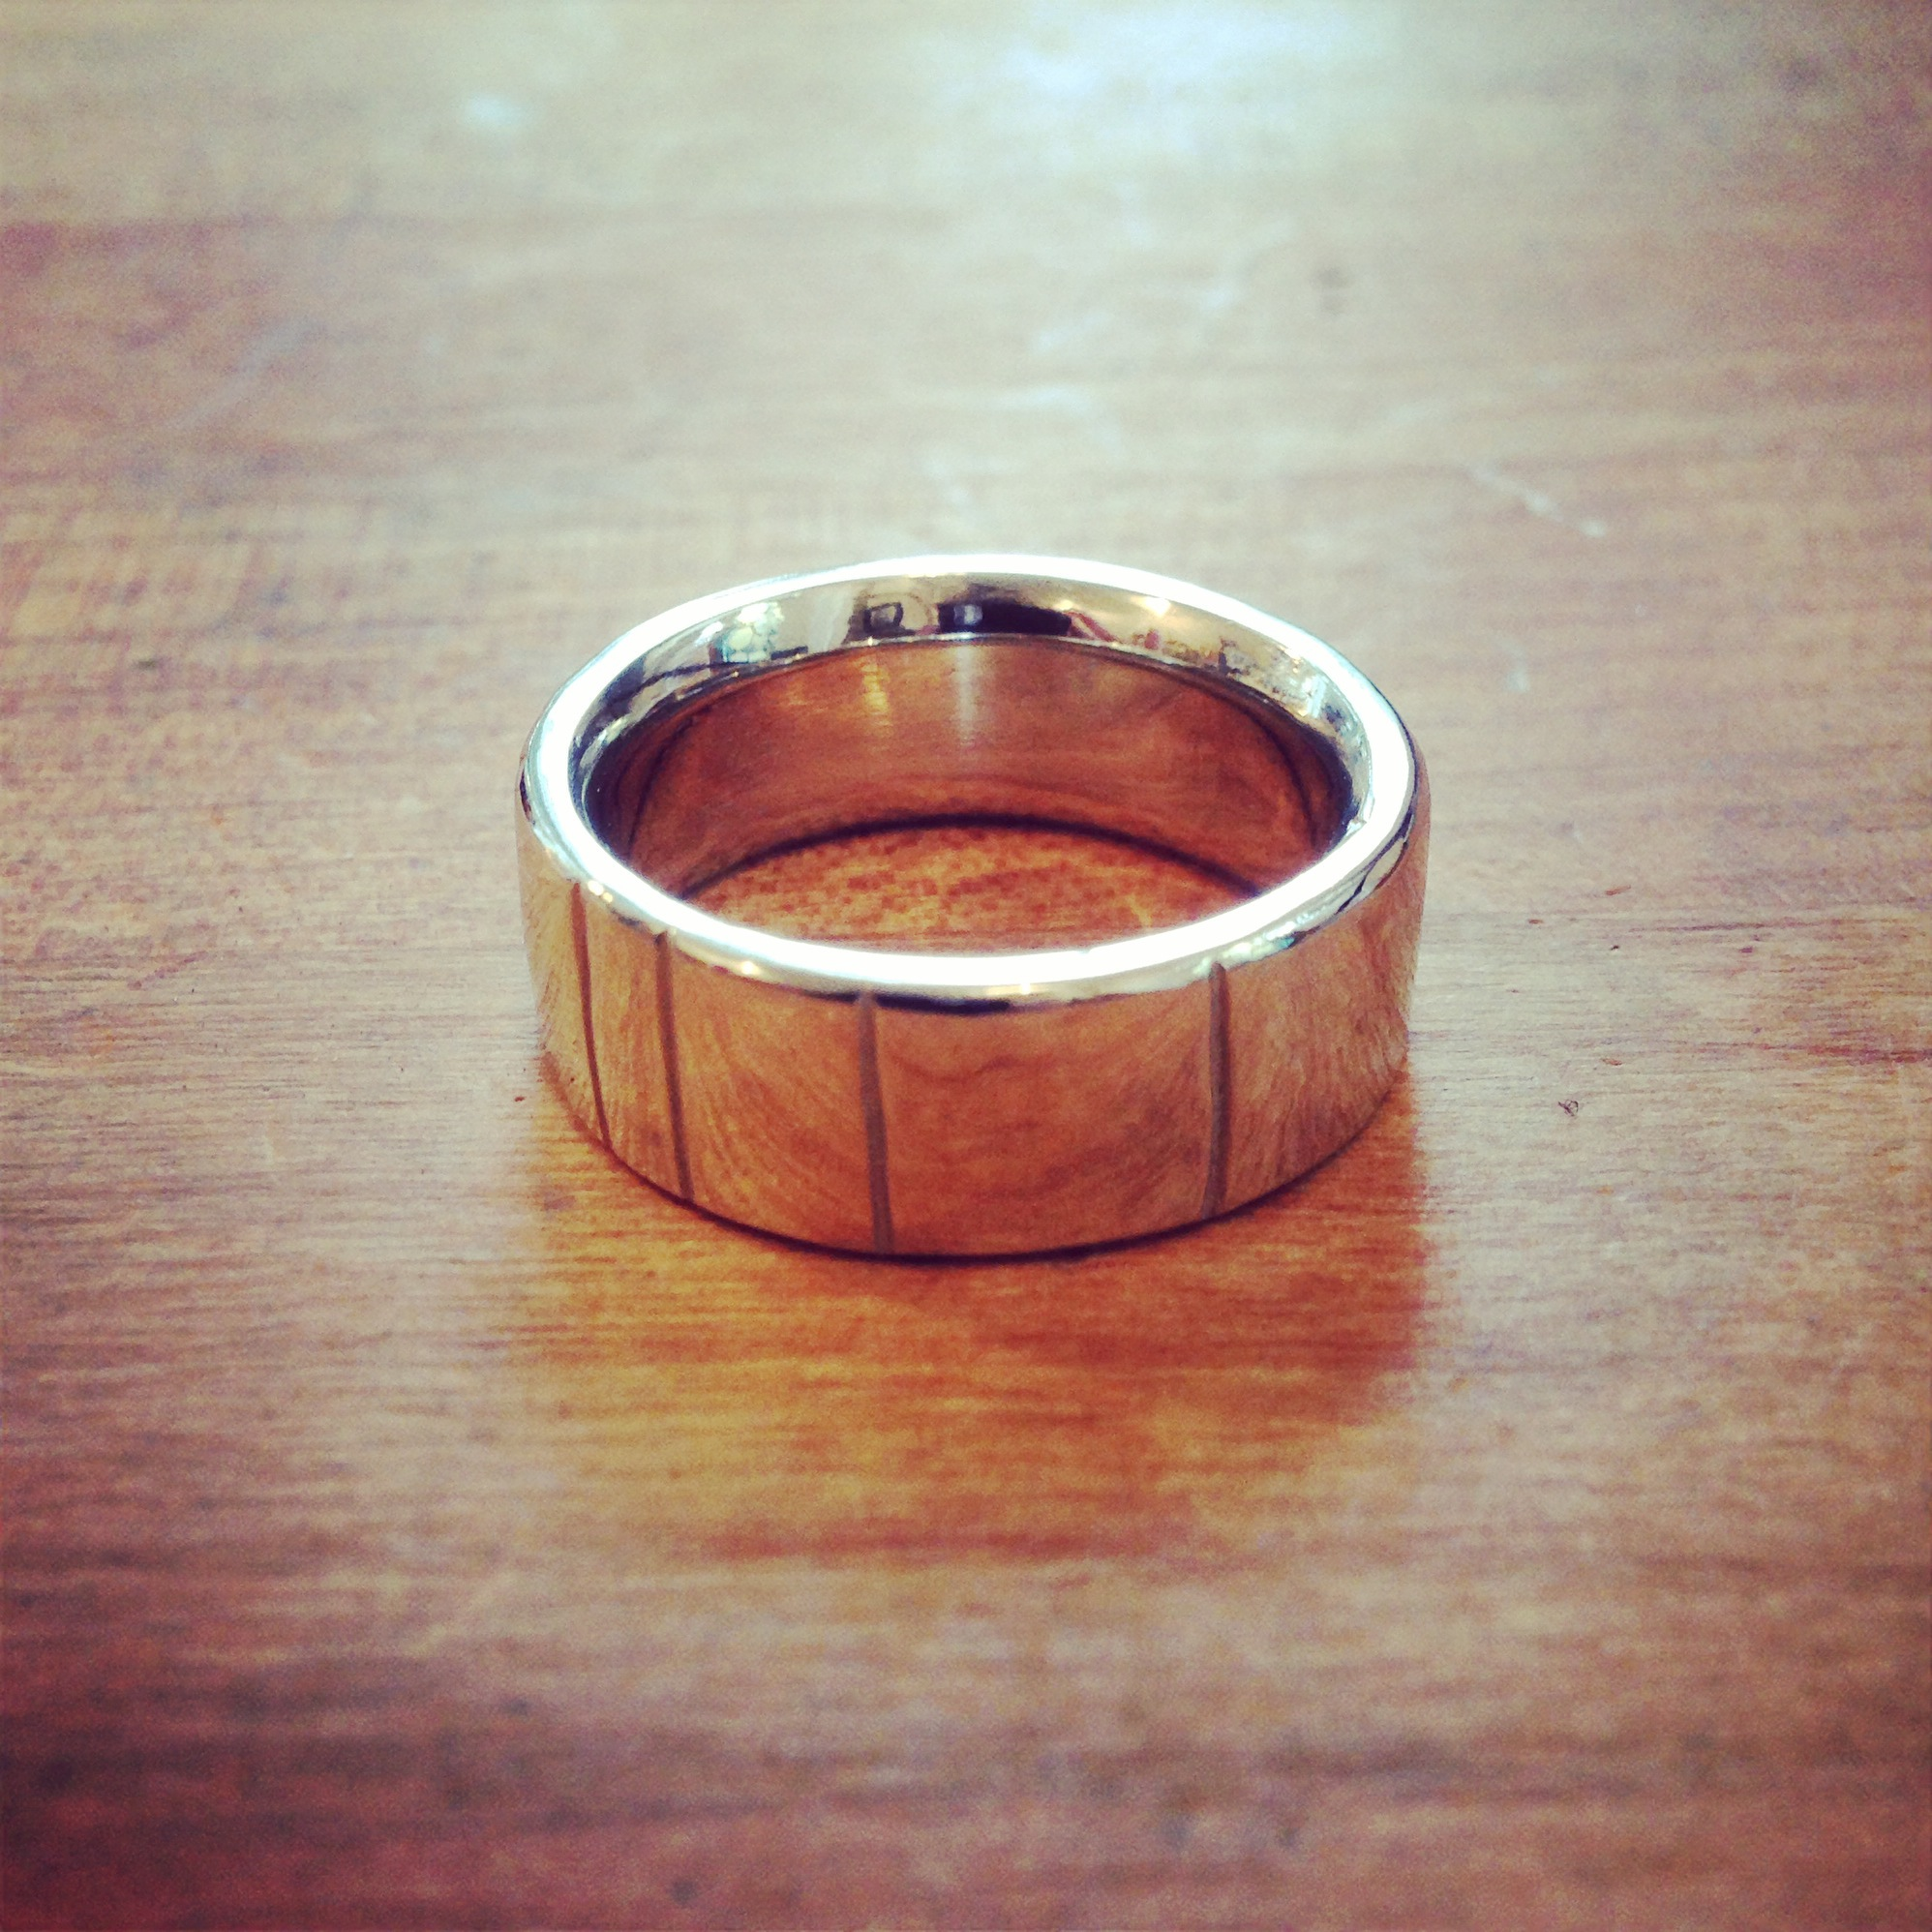 Men's wedding band.